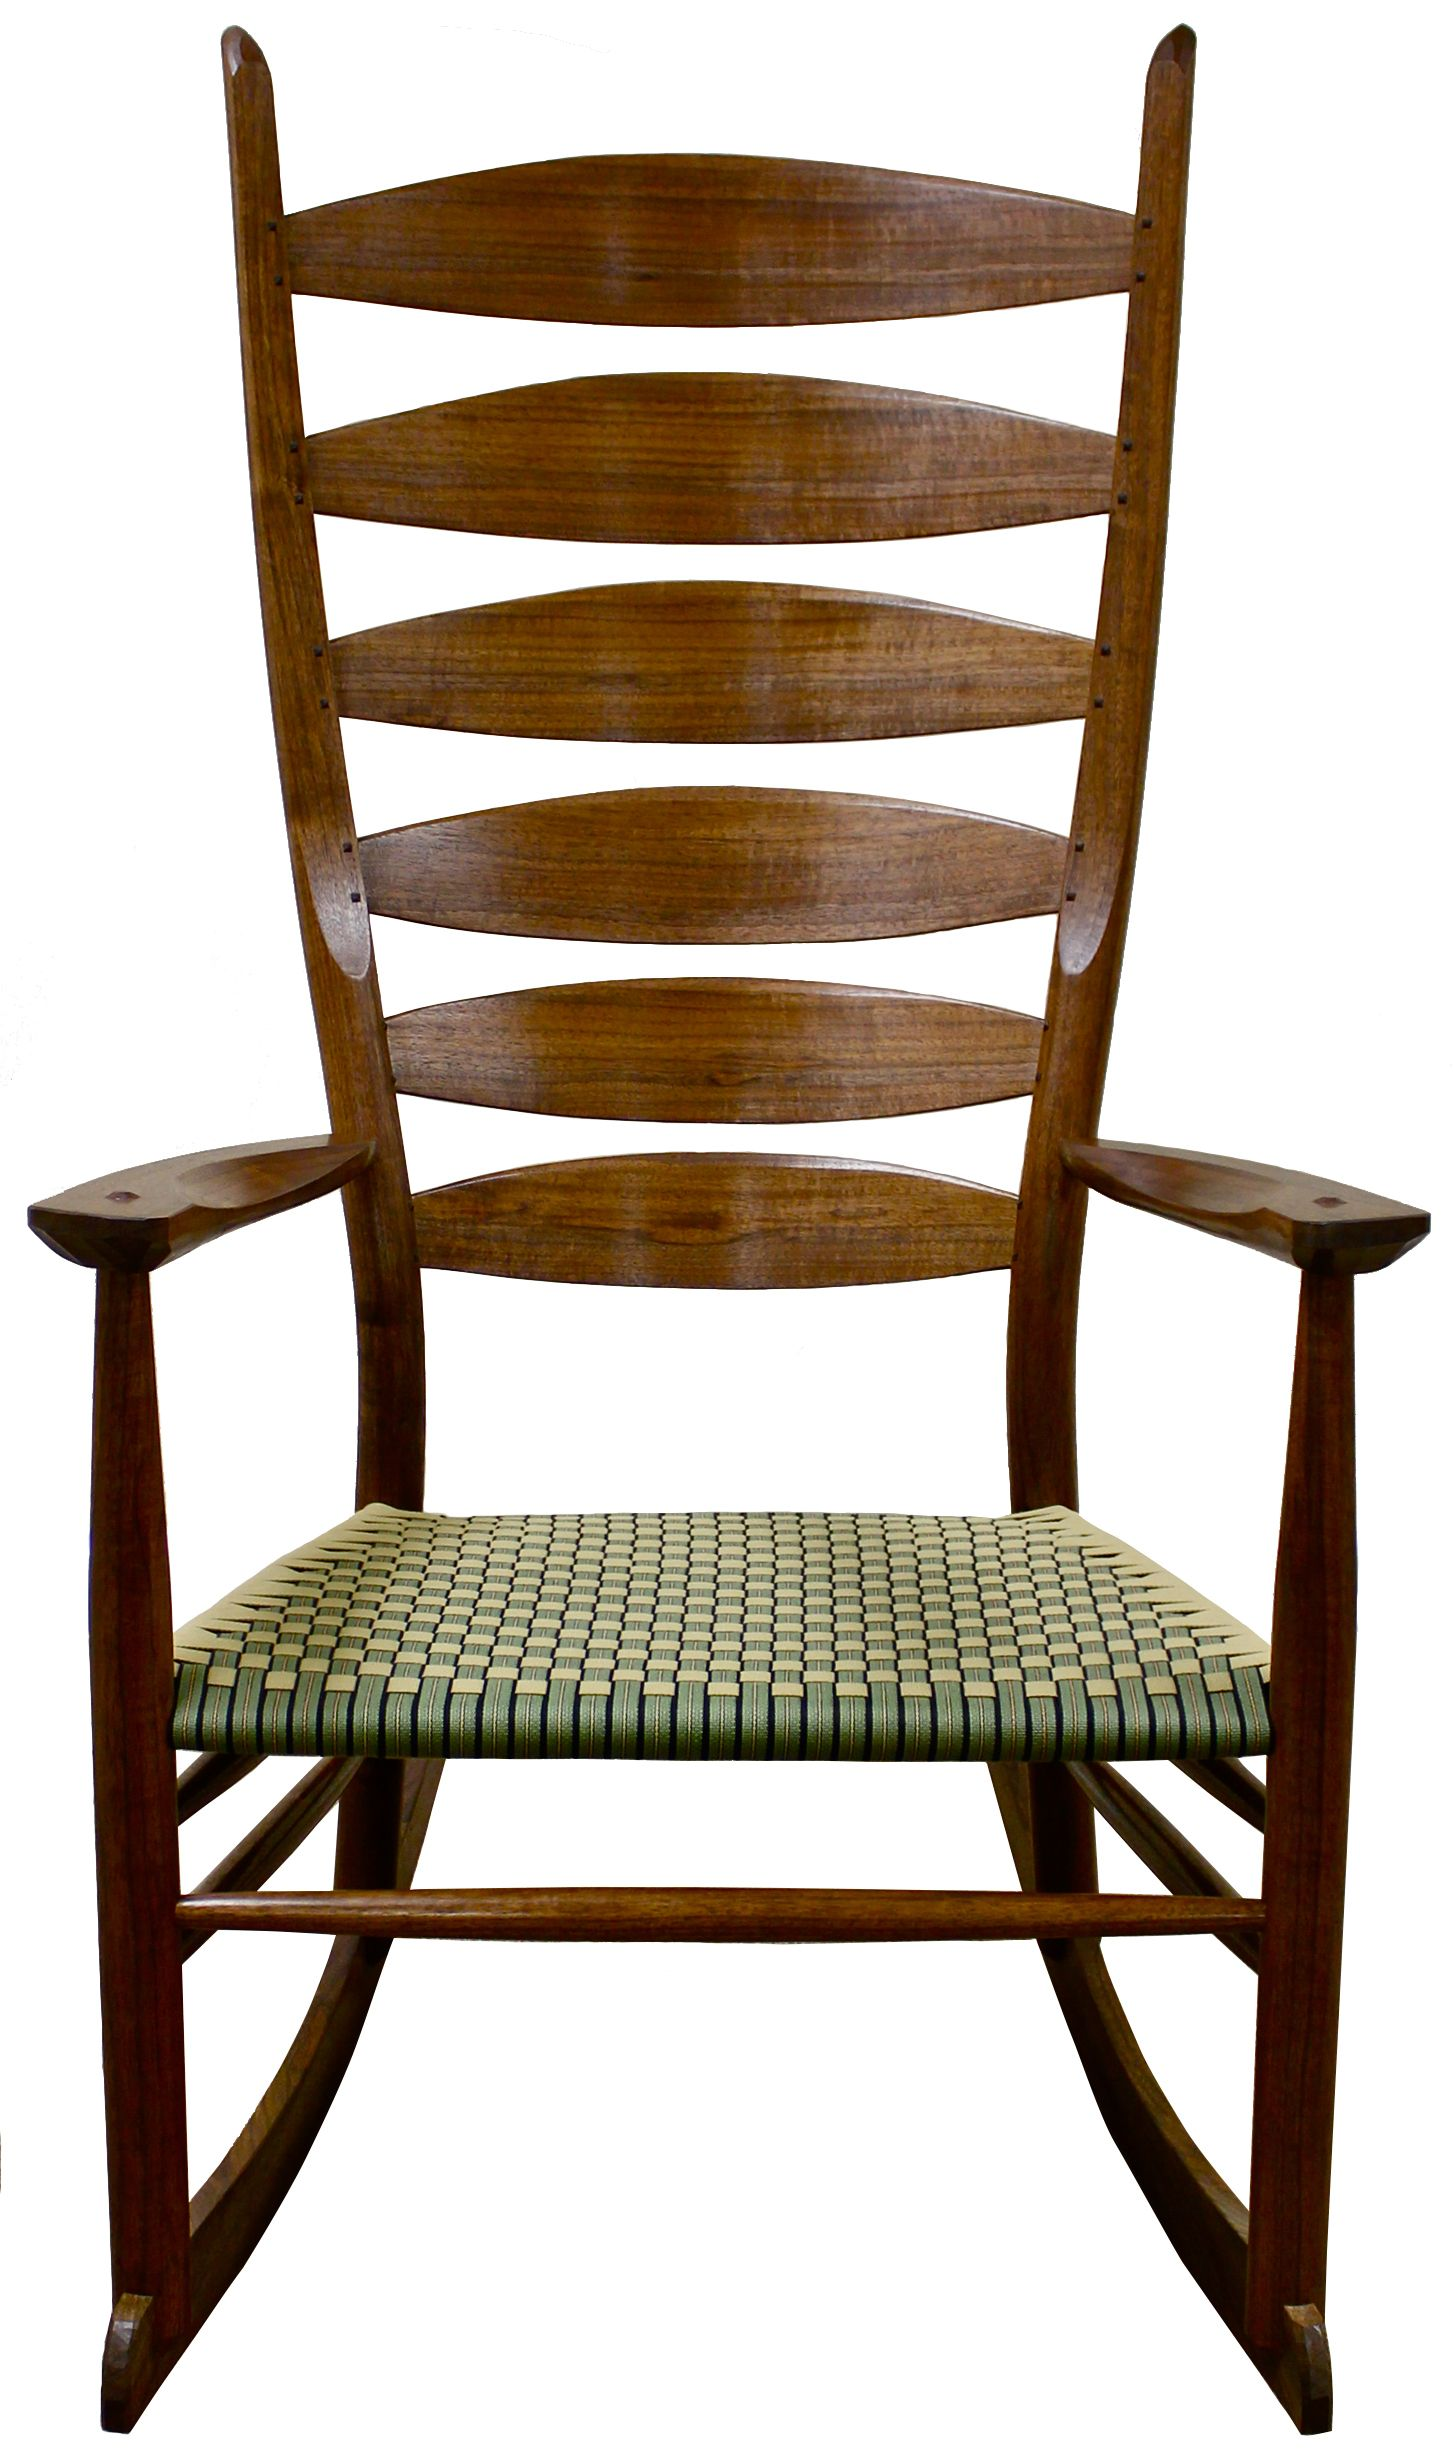 Ladder back chairs with cushions - Custom Made Boggs Classic Ladderback Rocking Chair